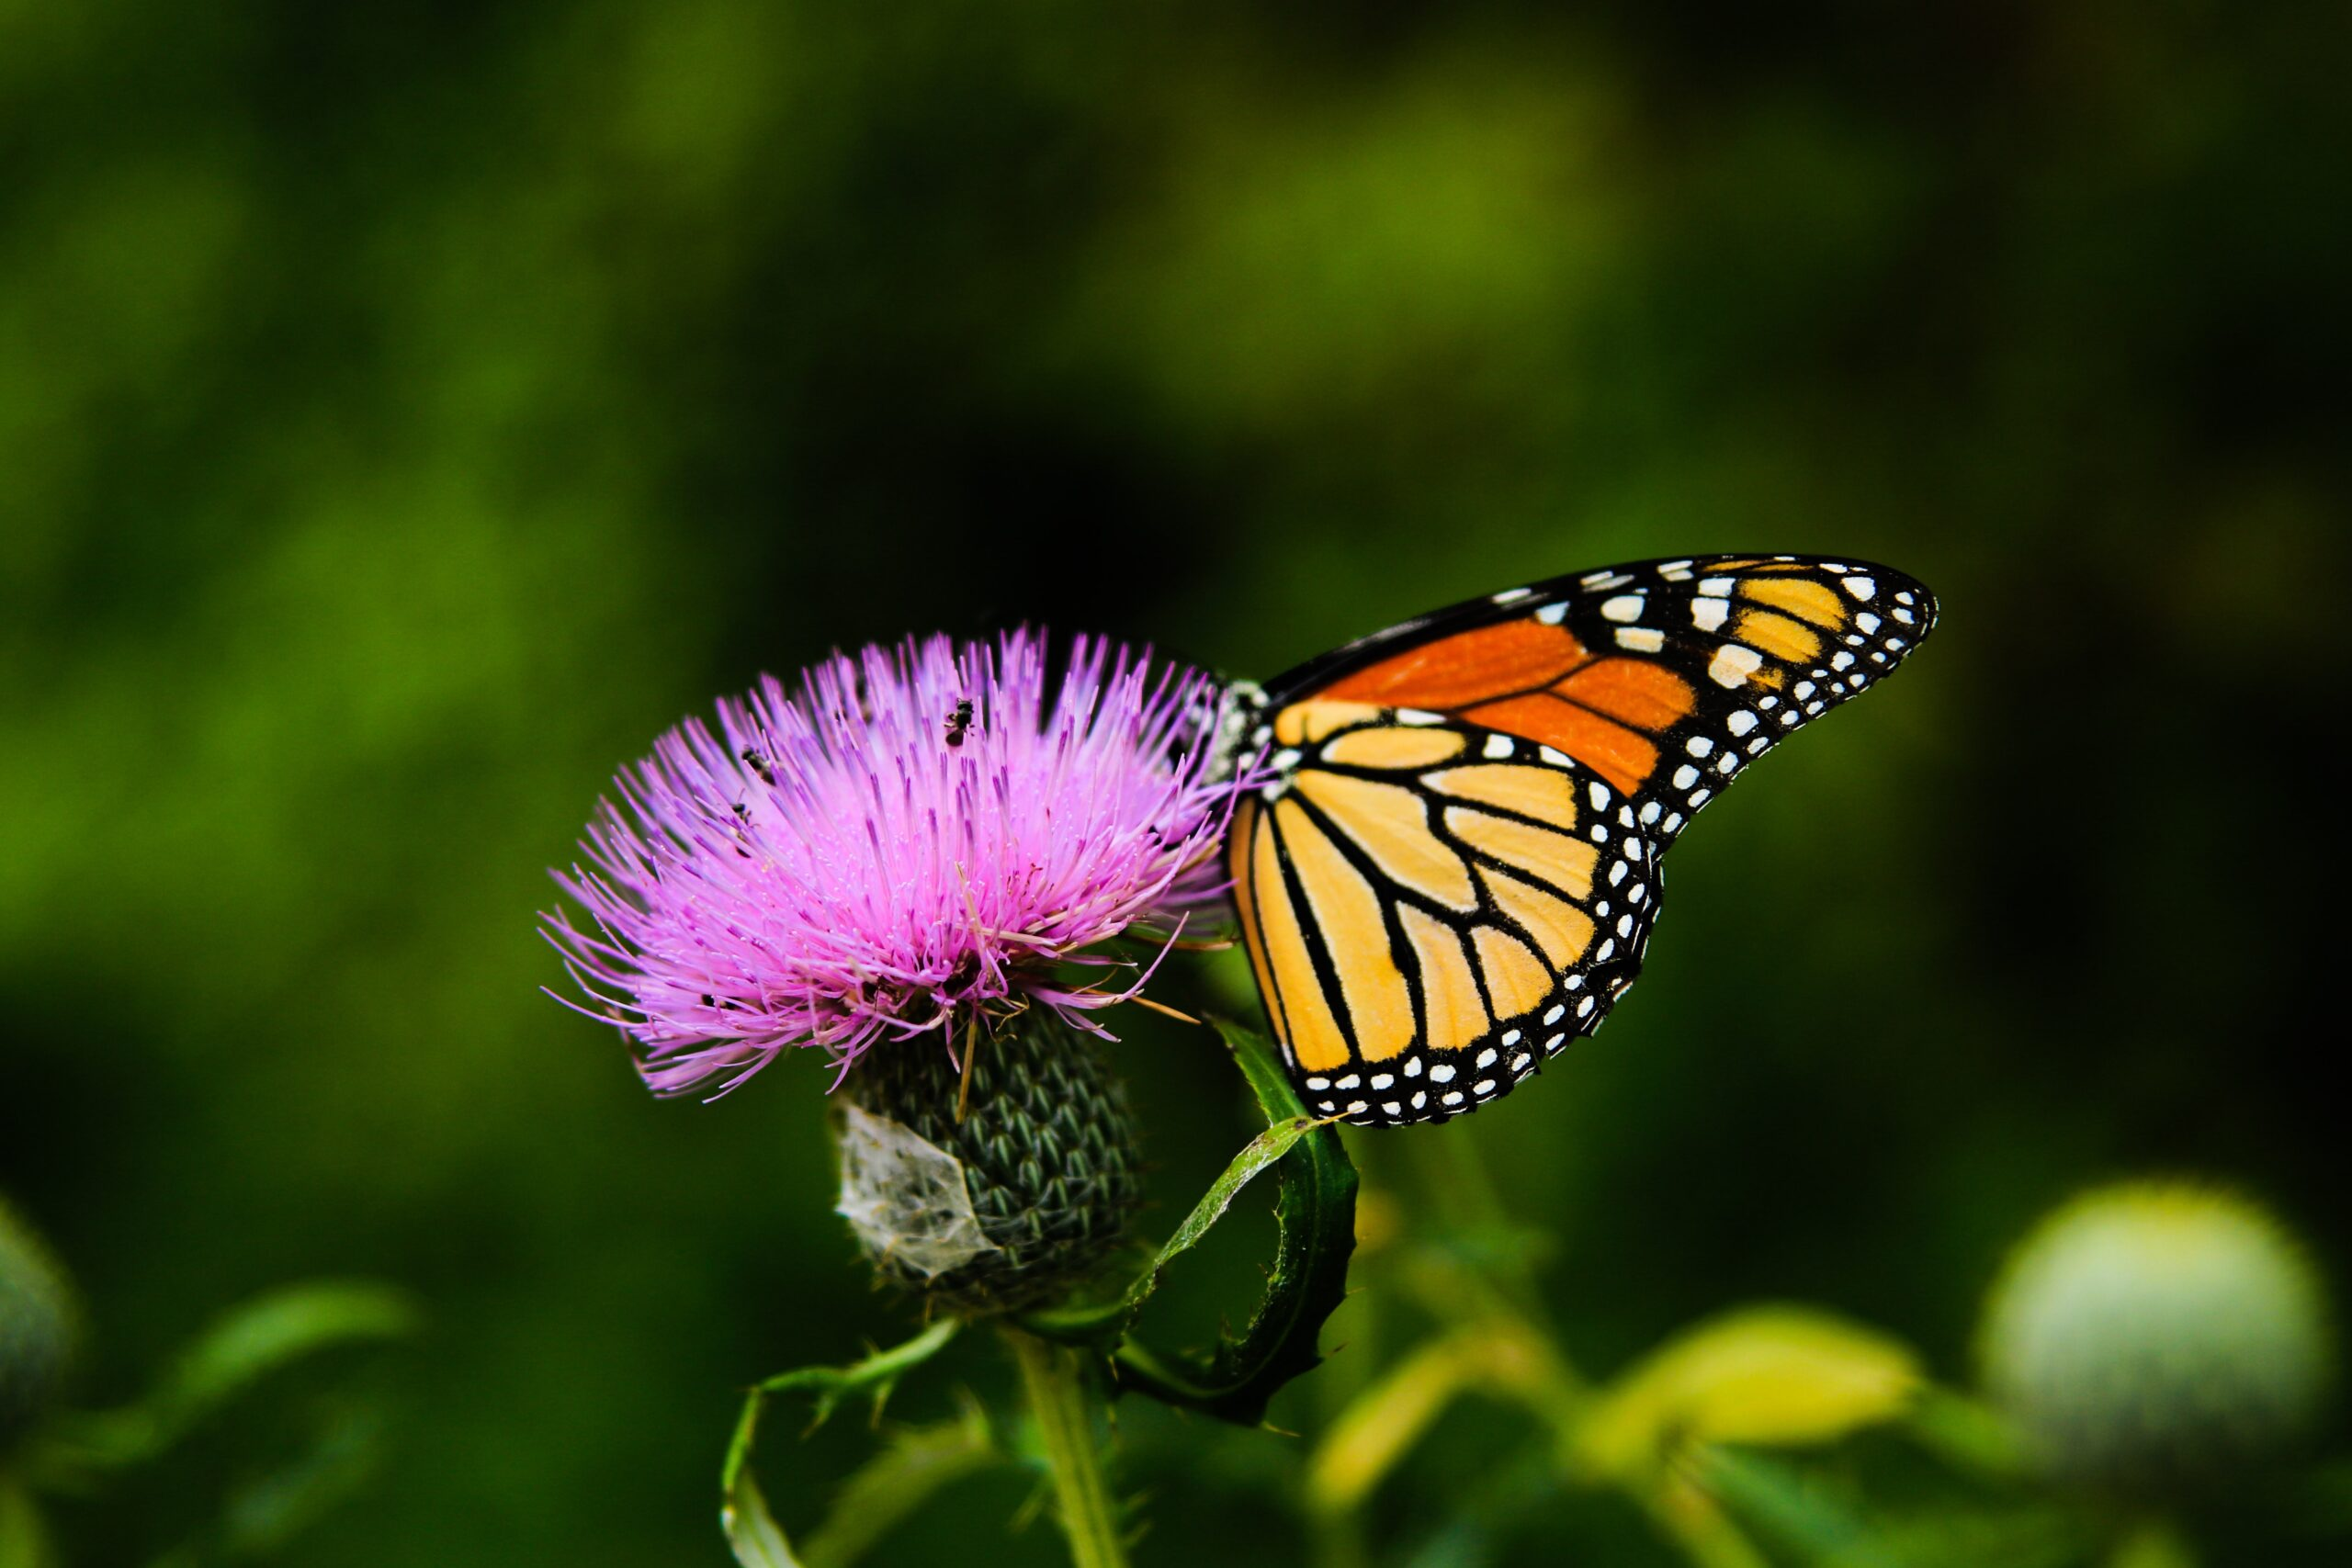 Milk Thistle Flower With Butterfly By Sean Stratton Ff85l4v0wom Unsplash